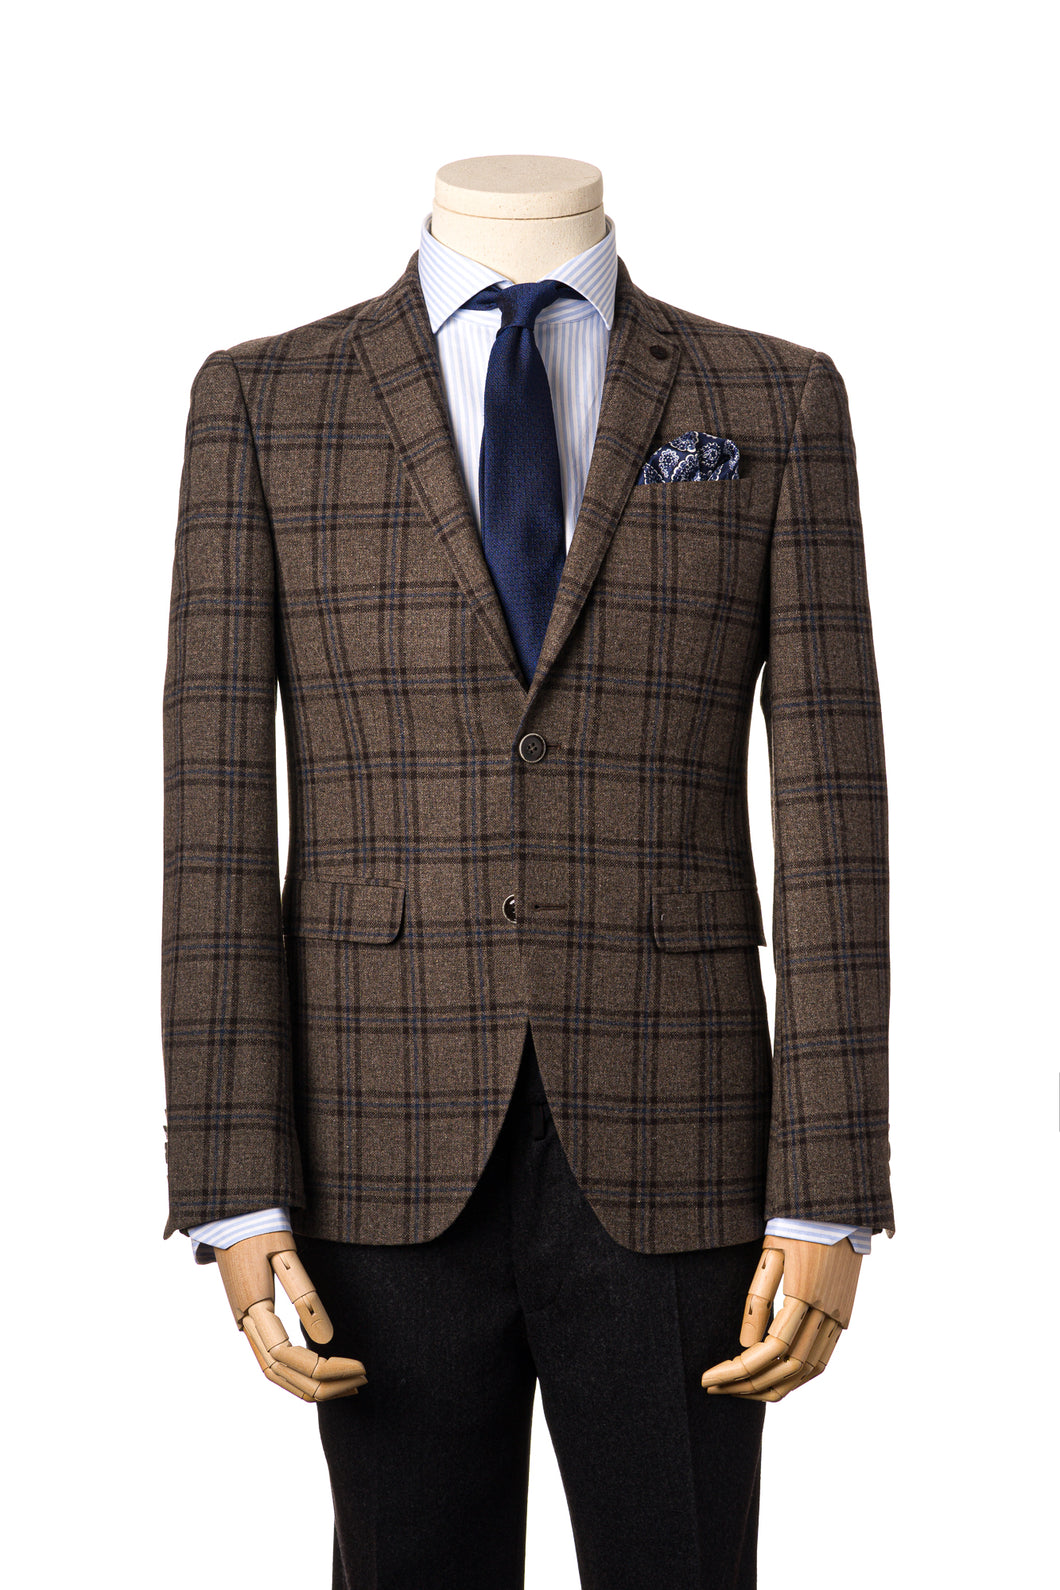 Shape Brown check Tweed Jacket by Daniel Hechter